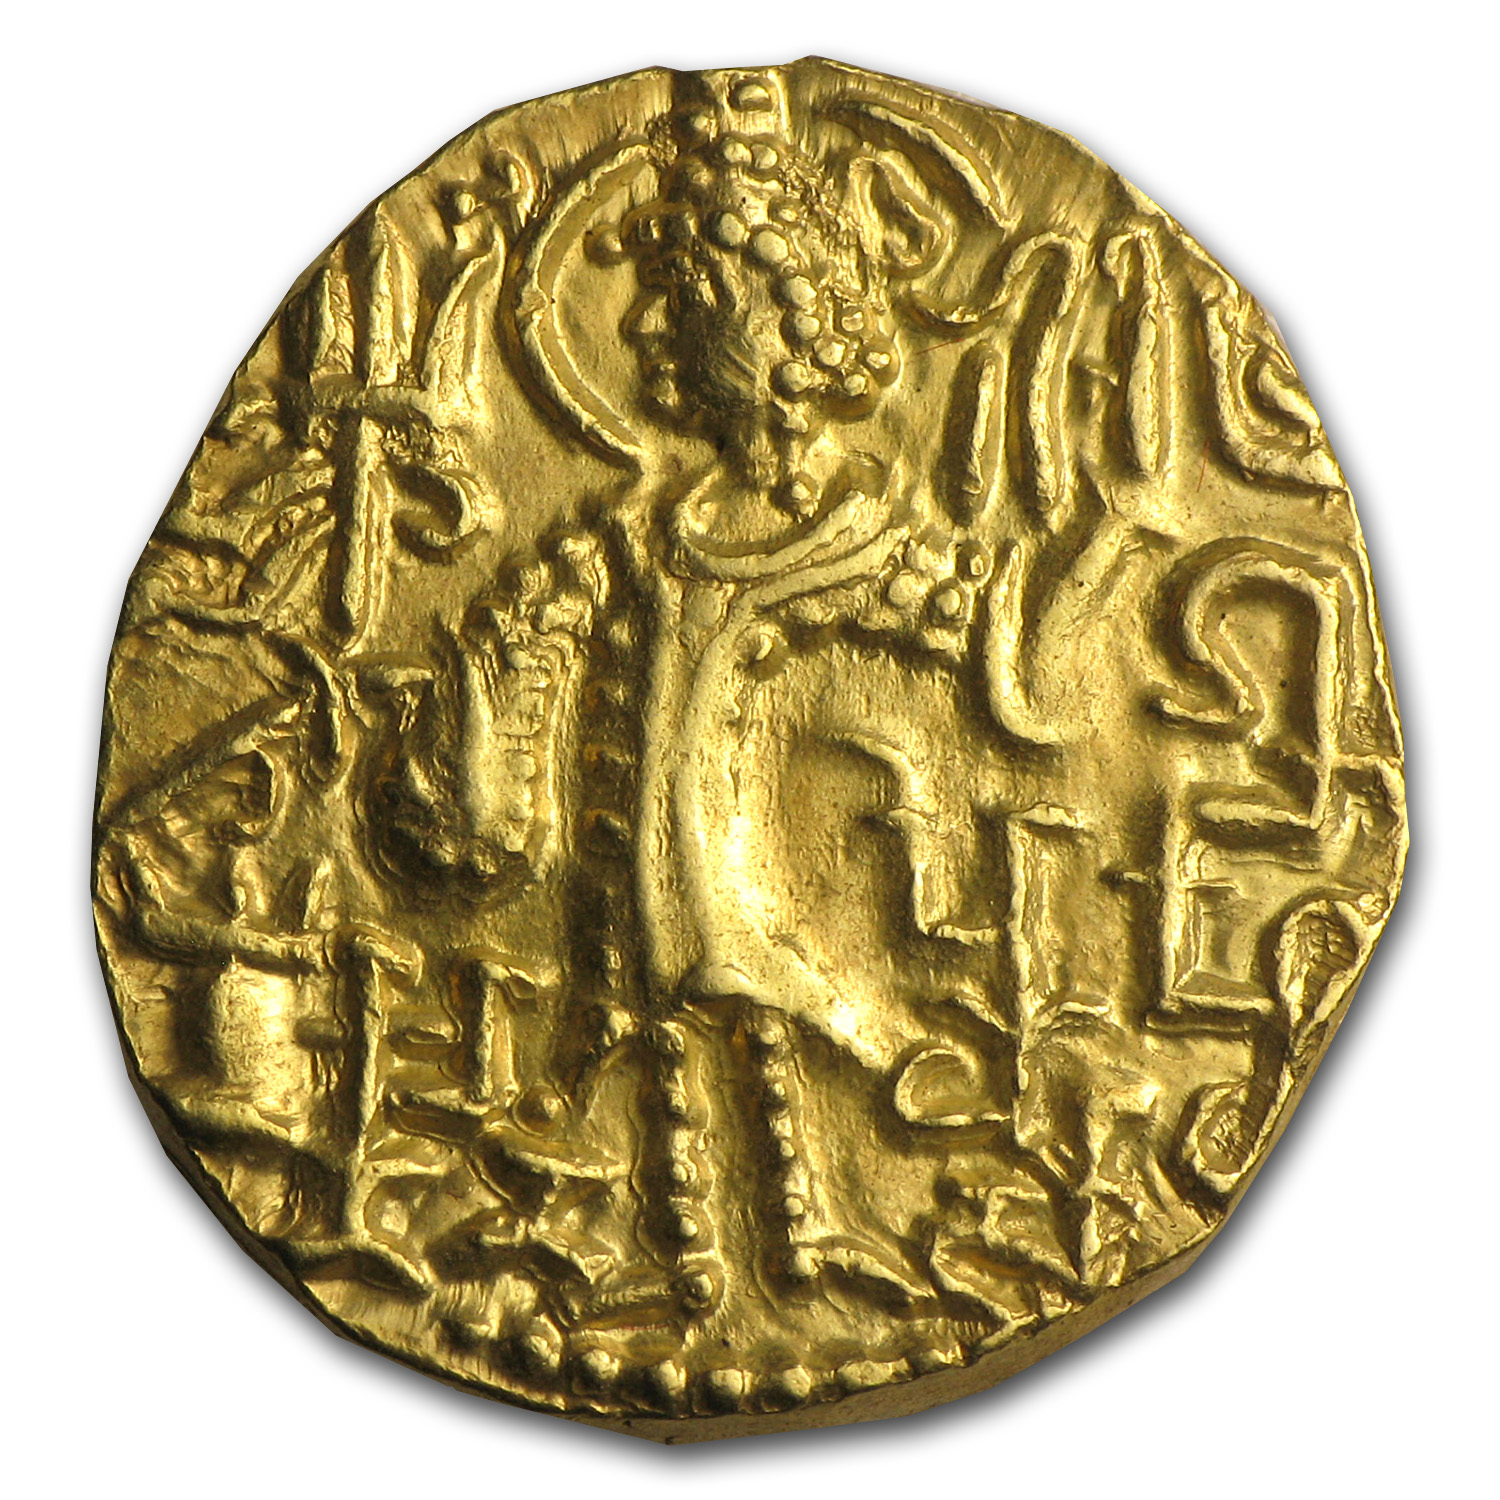 Kushan Gold Stater (Mid 4th Cent AD) XF+